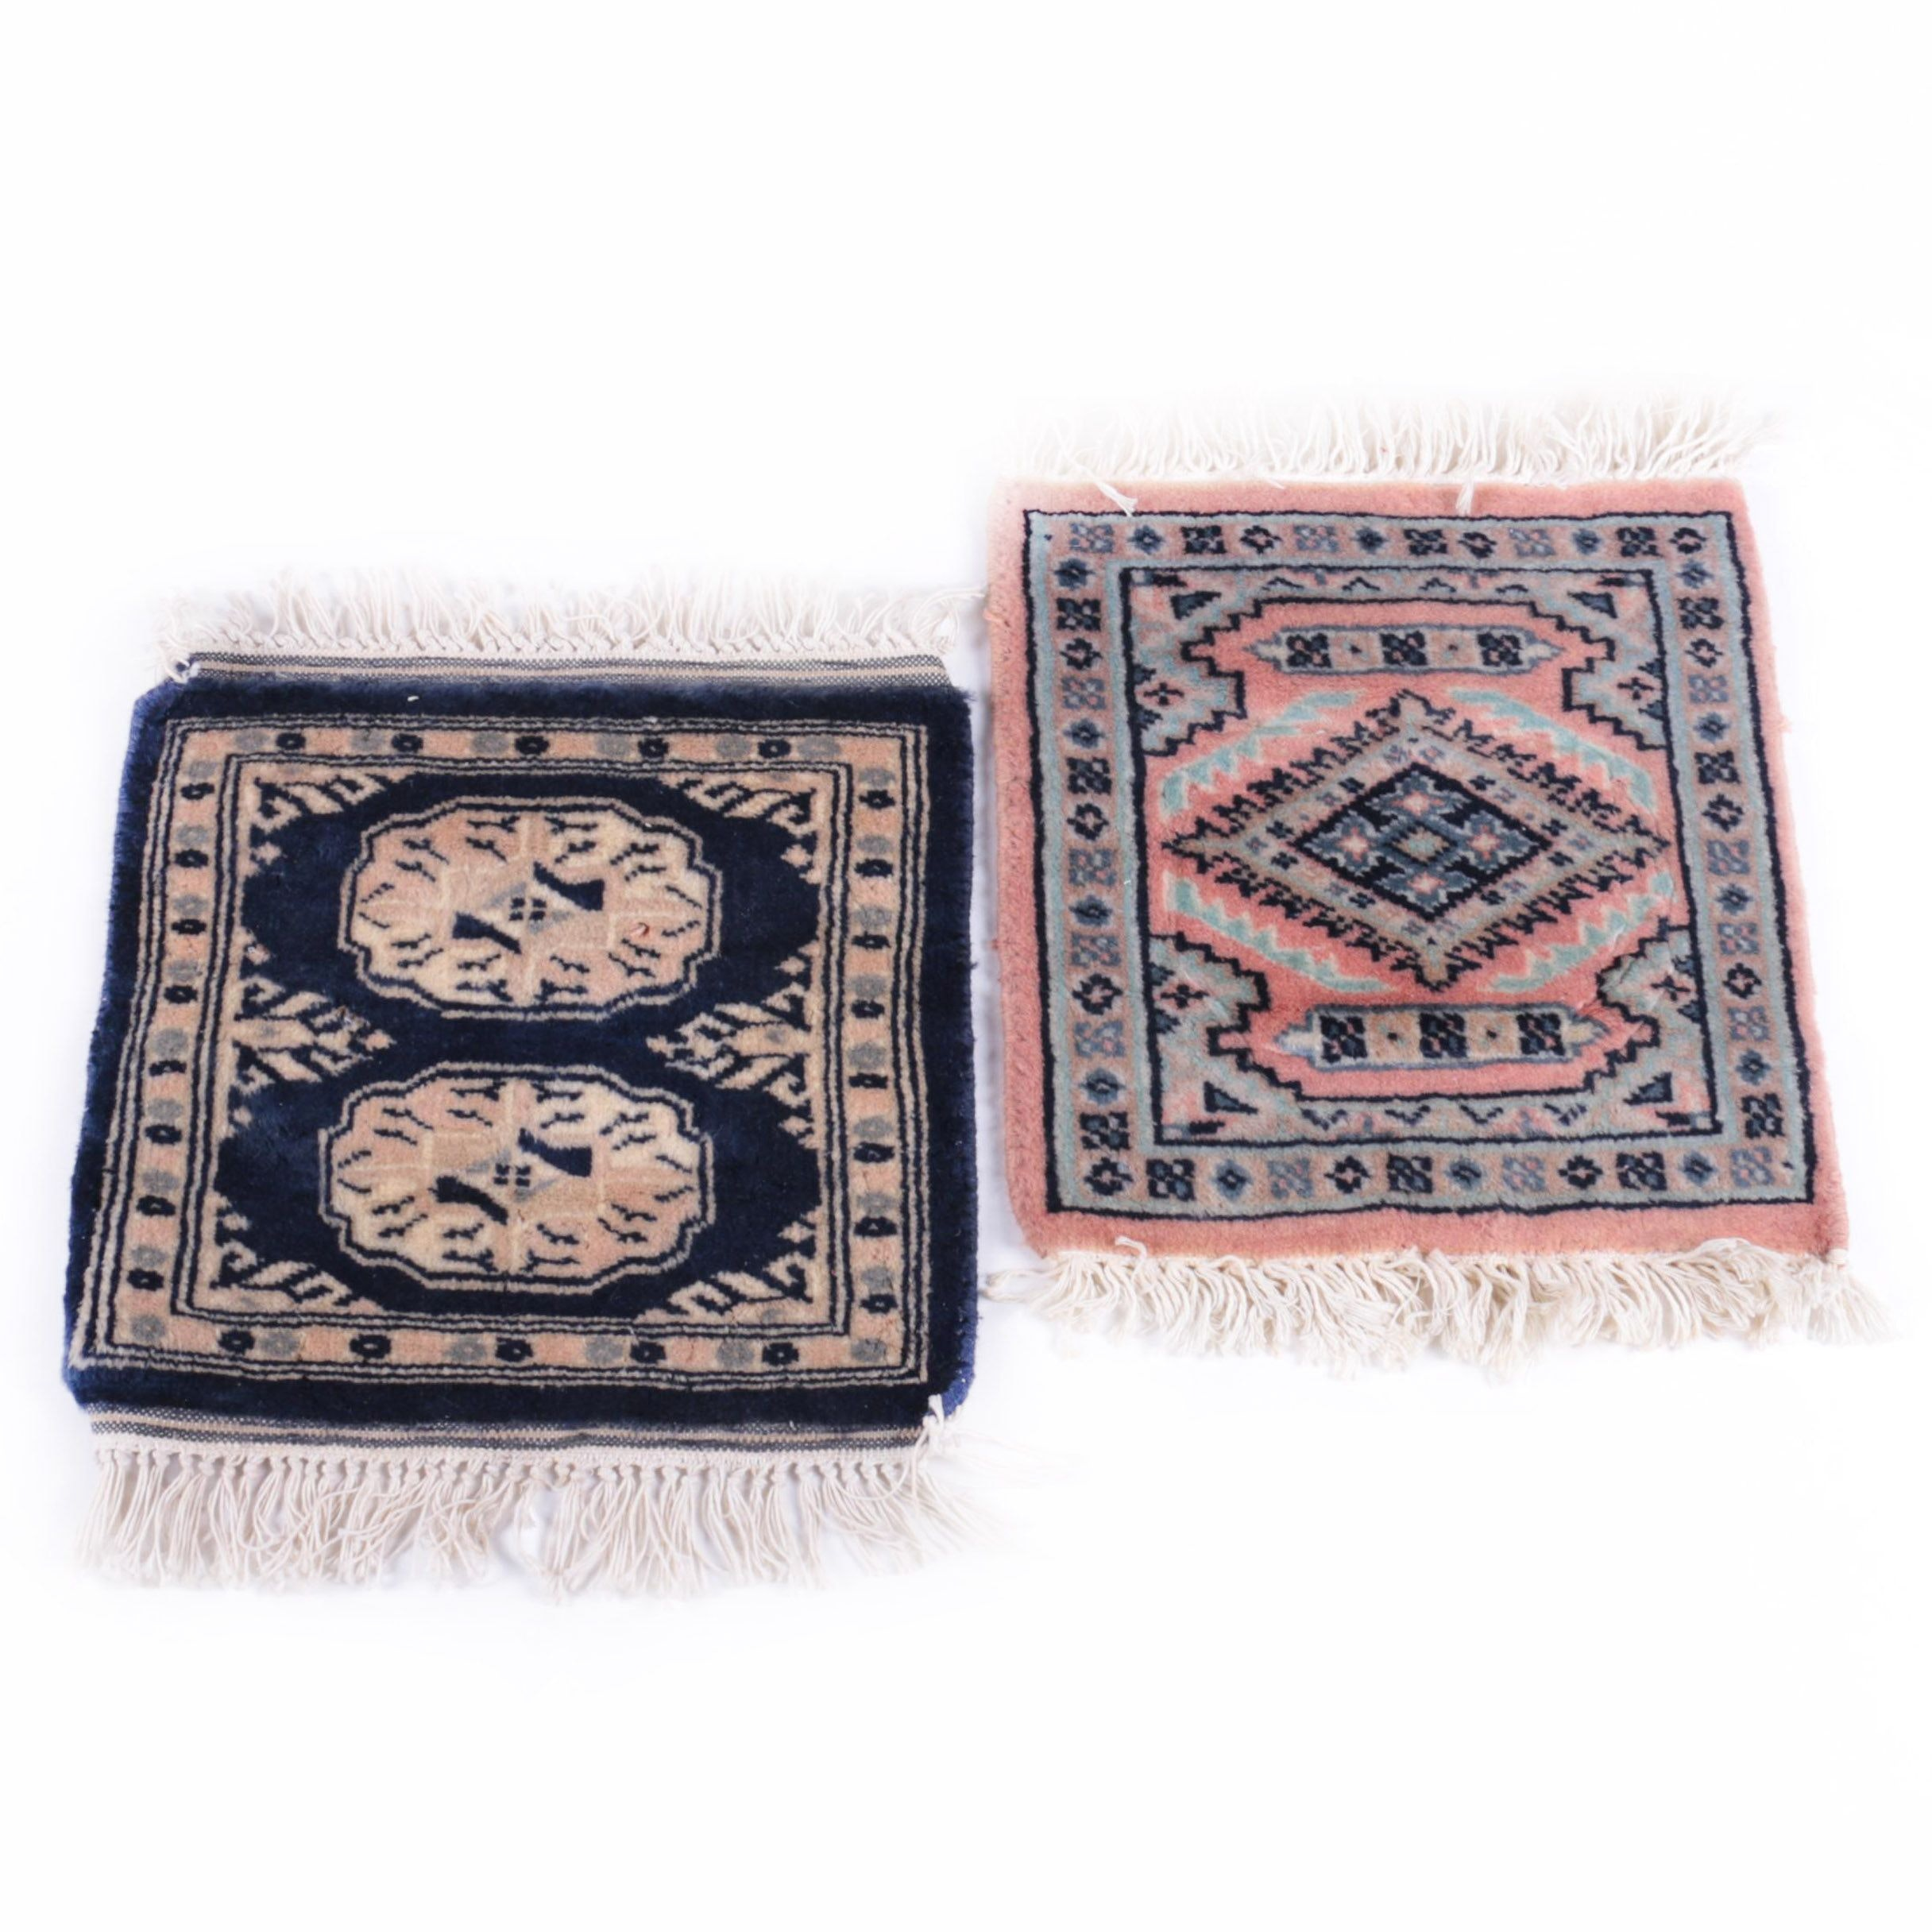 Pair of Hand-Knotted Pakistani Wool Mats